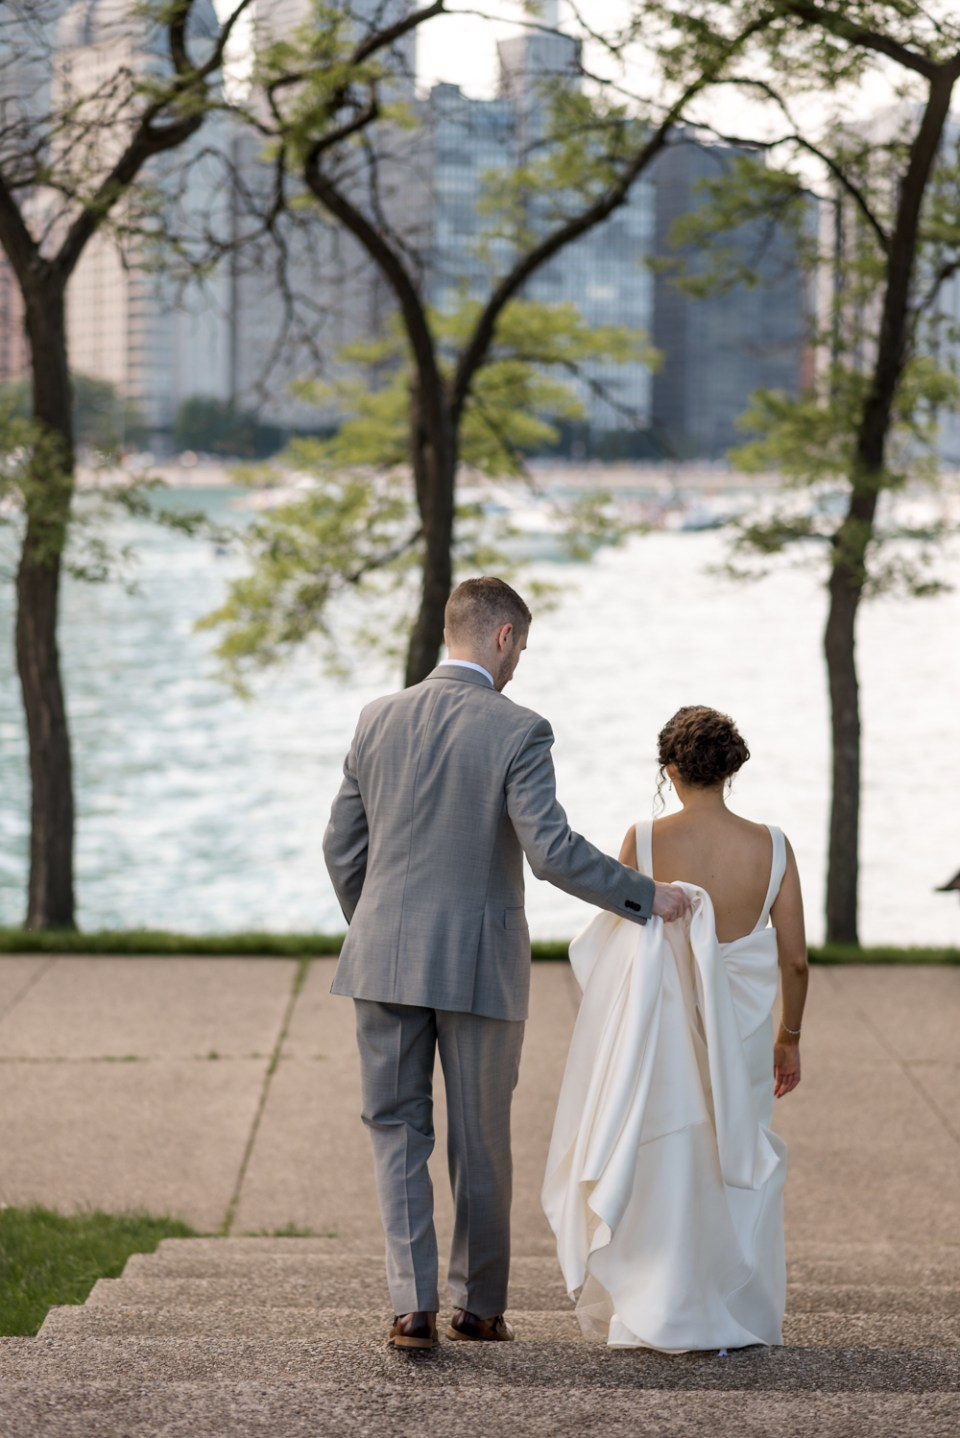 Groom helps hold Bride's dress during portraits at Olive Park in Chicago IL